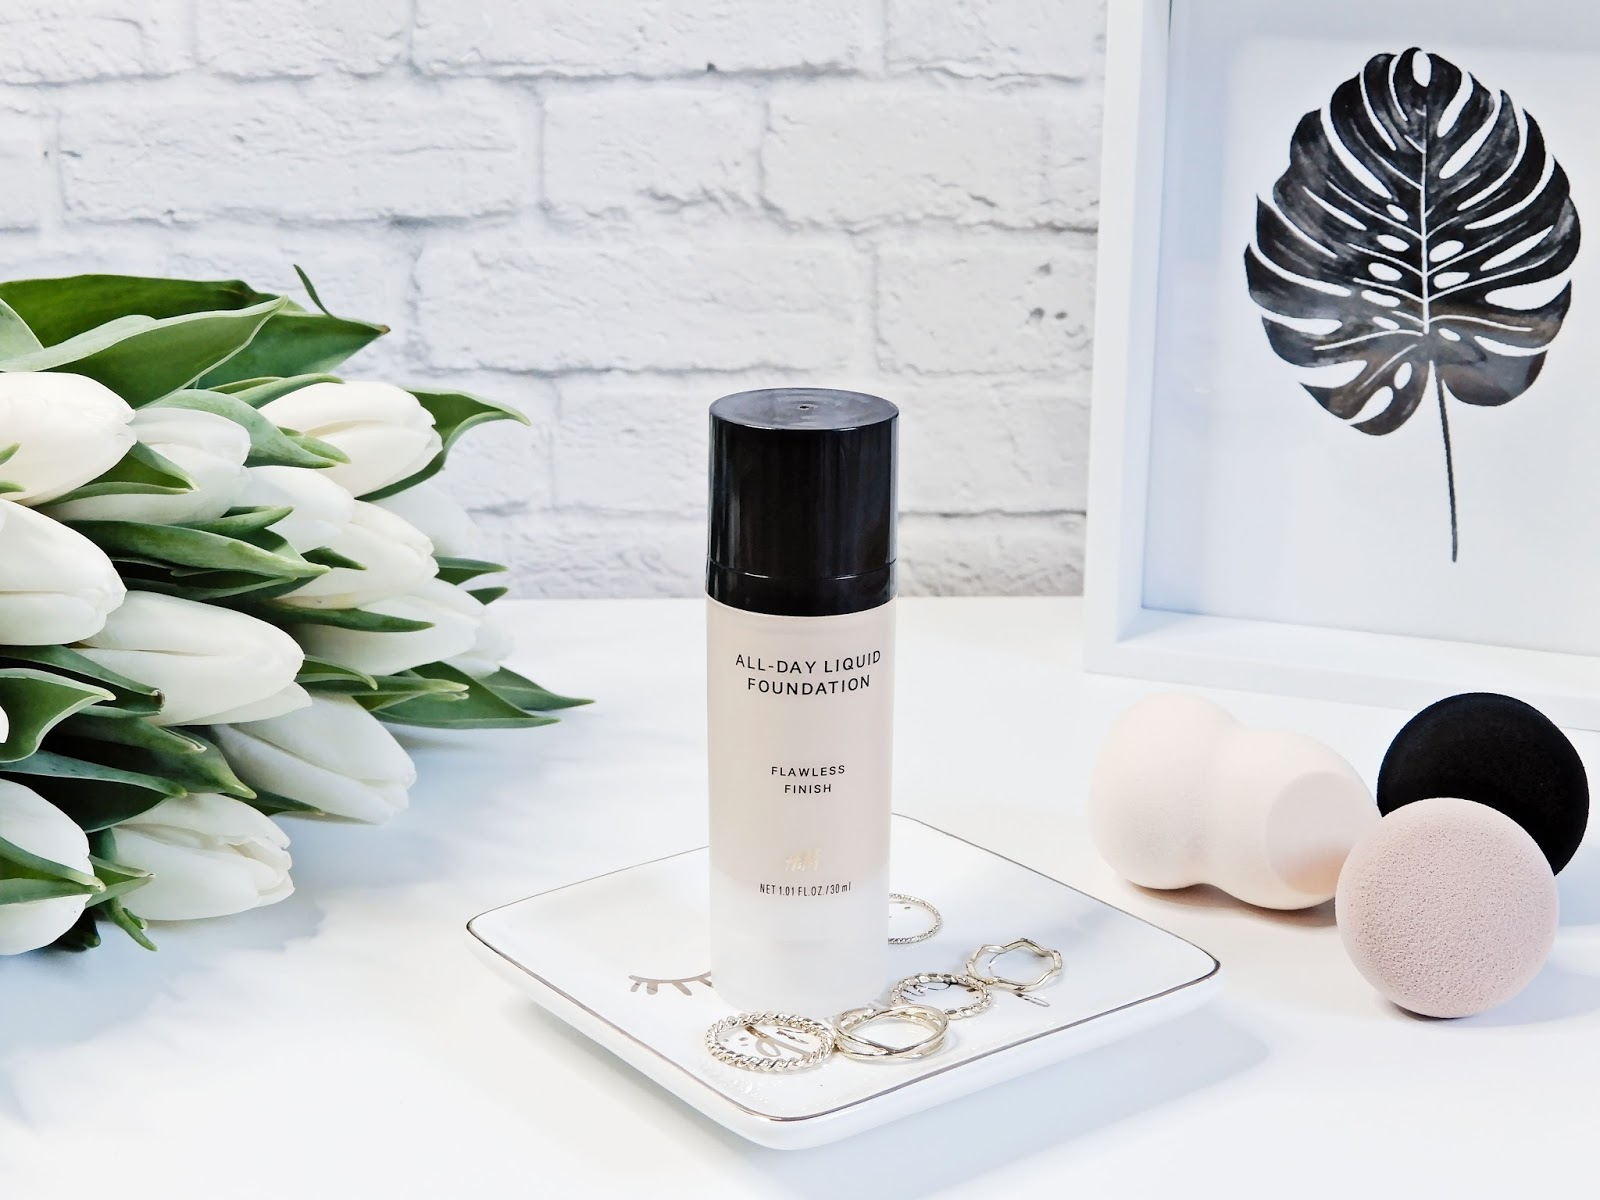 H&M All Day Liquid Foundation Soft Sand, h&m podkład,